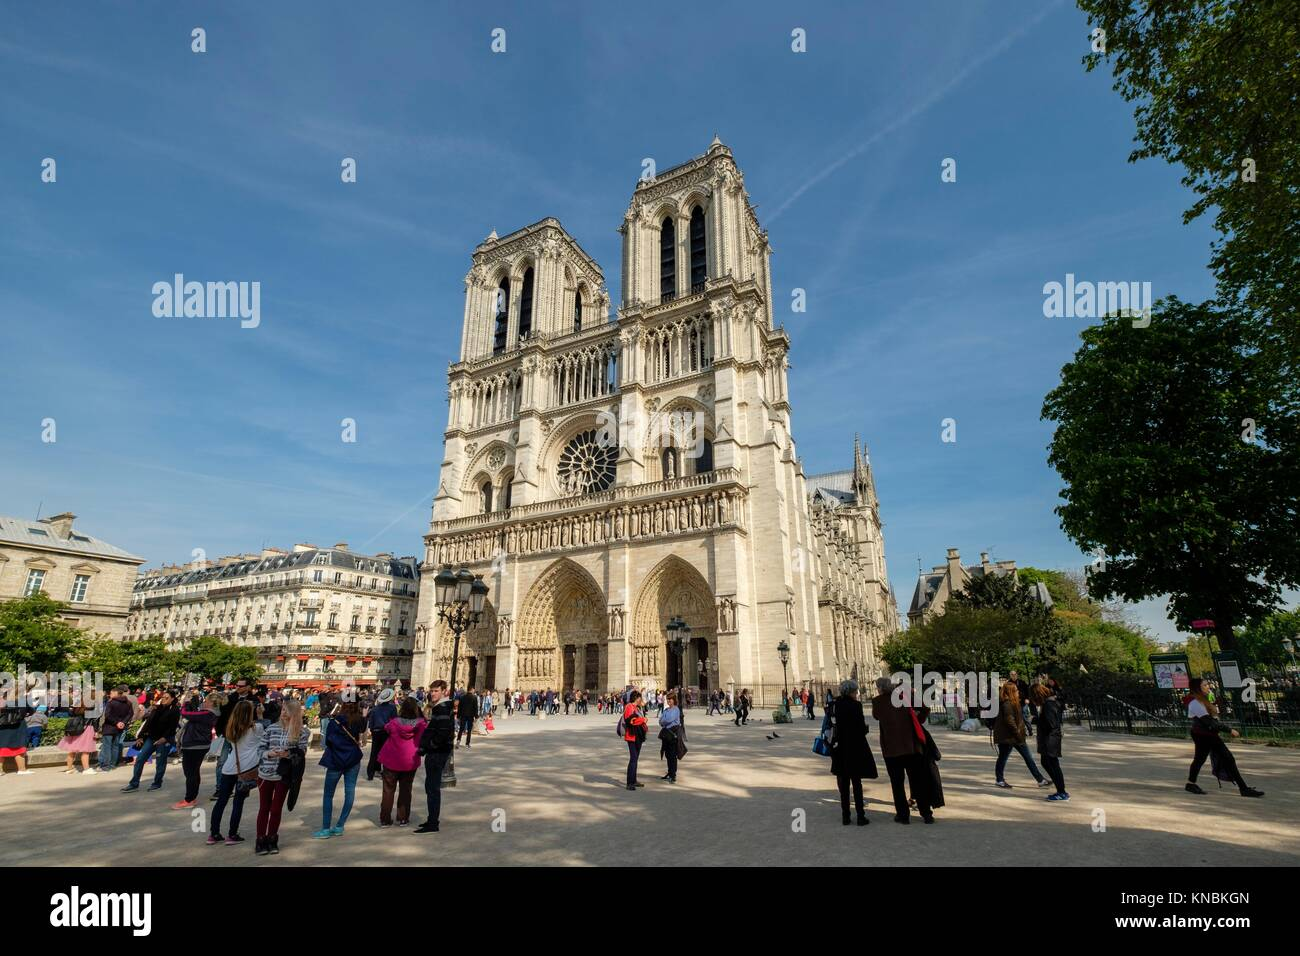 Western facade, Notre Dame Cathedral, Paris, France - Stock Image